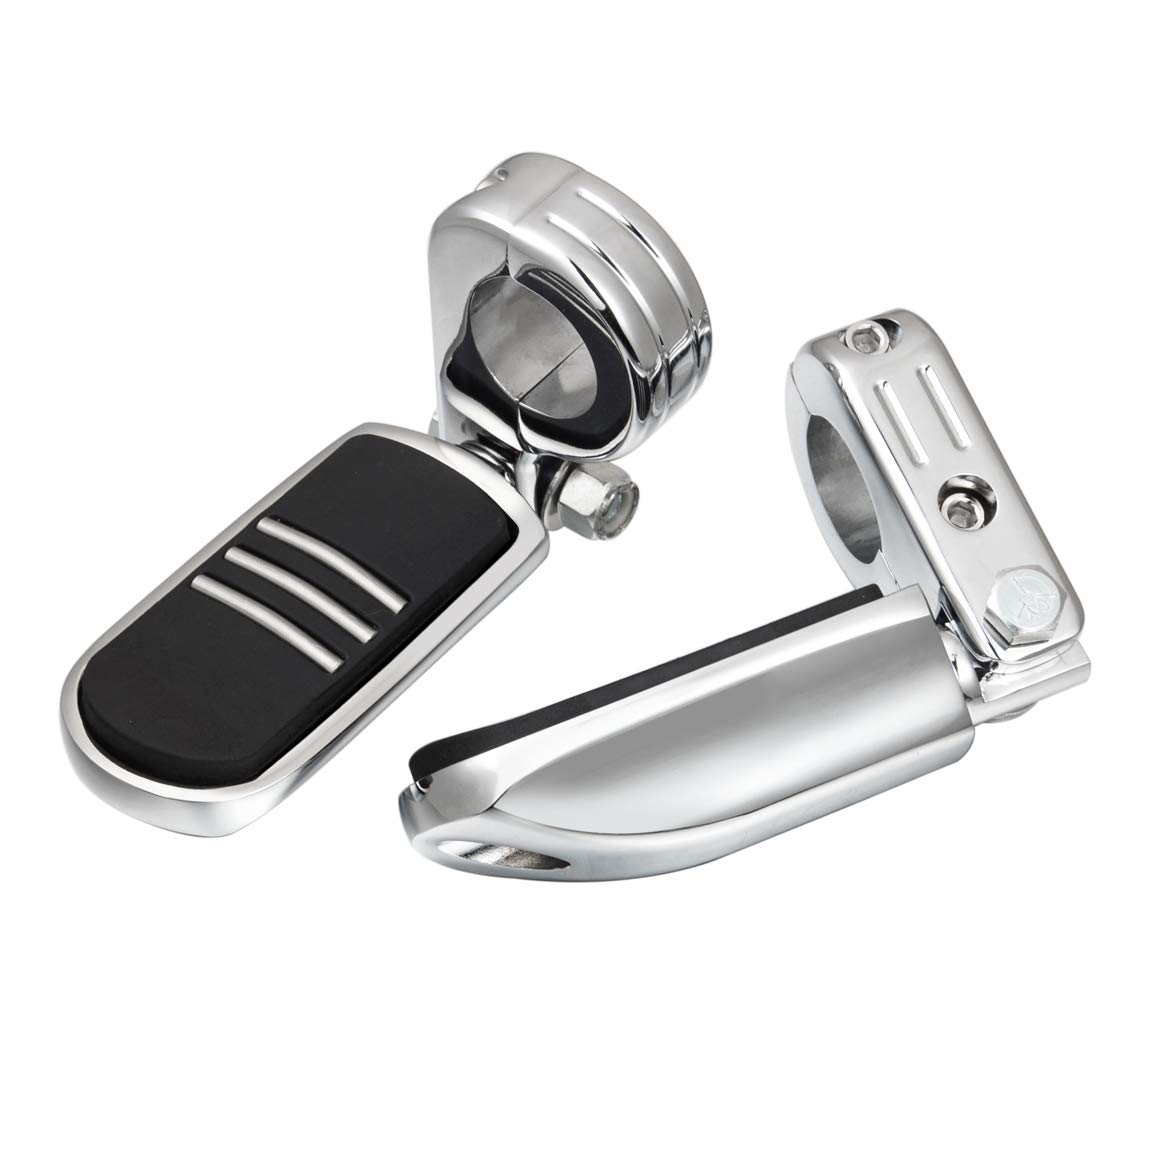 """Chrome PBYMT 1.25/"""" 32mm Engine Guard Highway Foot Pegs Footrest Compatible for Harley Softail Dyna Touring Electra Glide Street Glide Road King 1984-2020"""